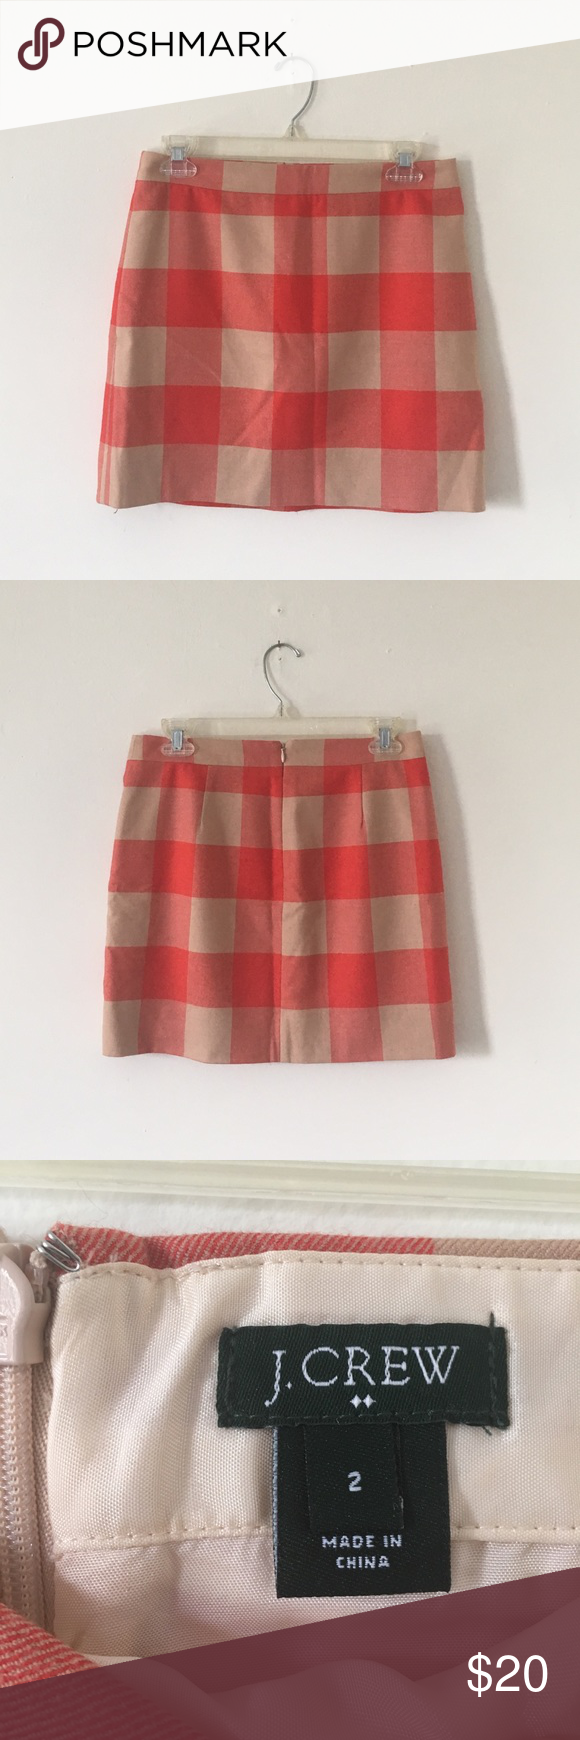 J. Crew Plaid Wool Blend Mini Skirt Red and tan Plaid mini skirt in excellent condition. Barely worn. 38% Wool 30% polyester 29% viscose 3% spandex with 100% viscose lining. Lightweight Wool blend J. Crew Skirts Mini